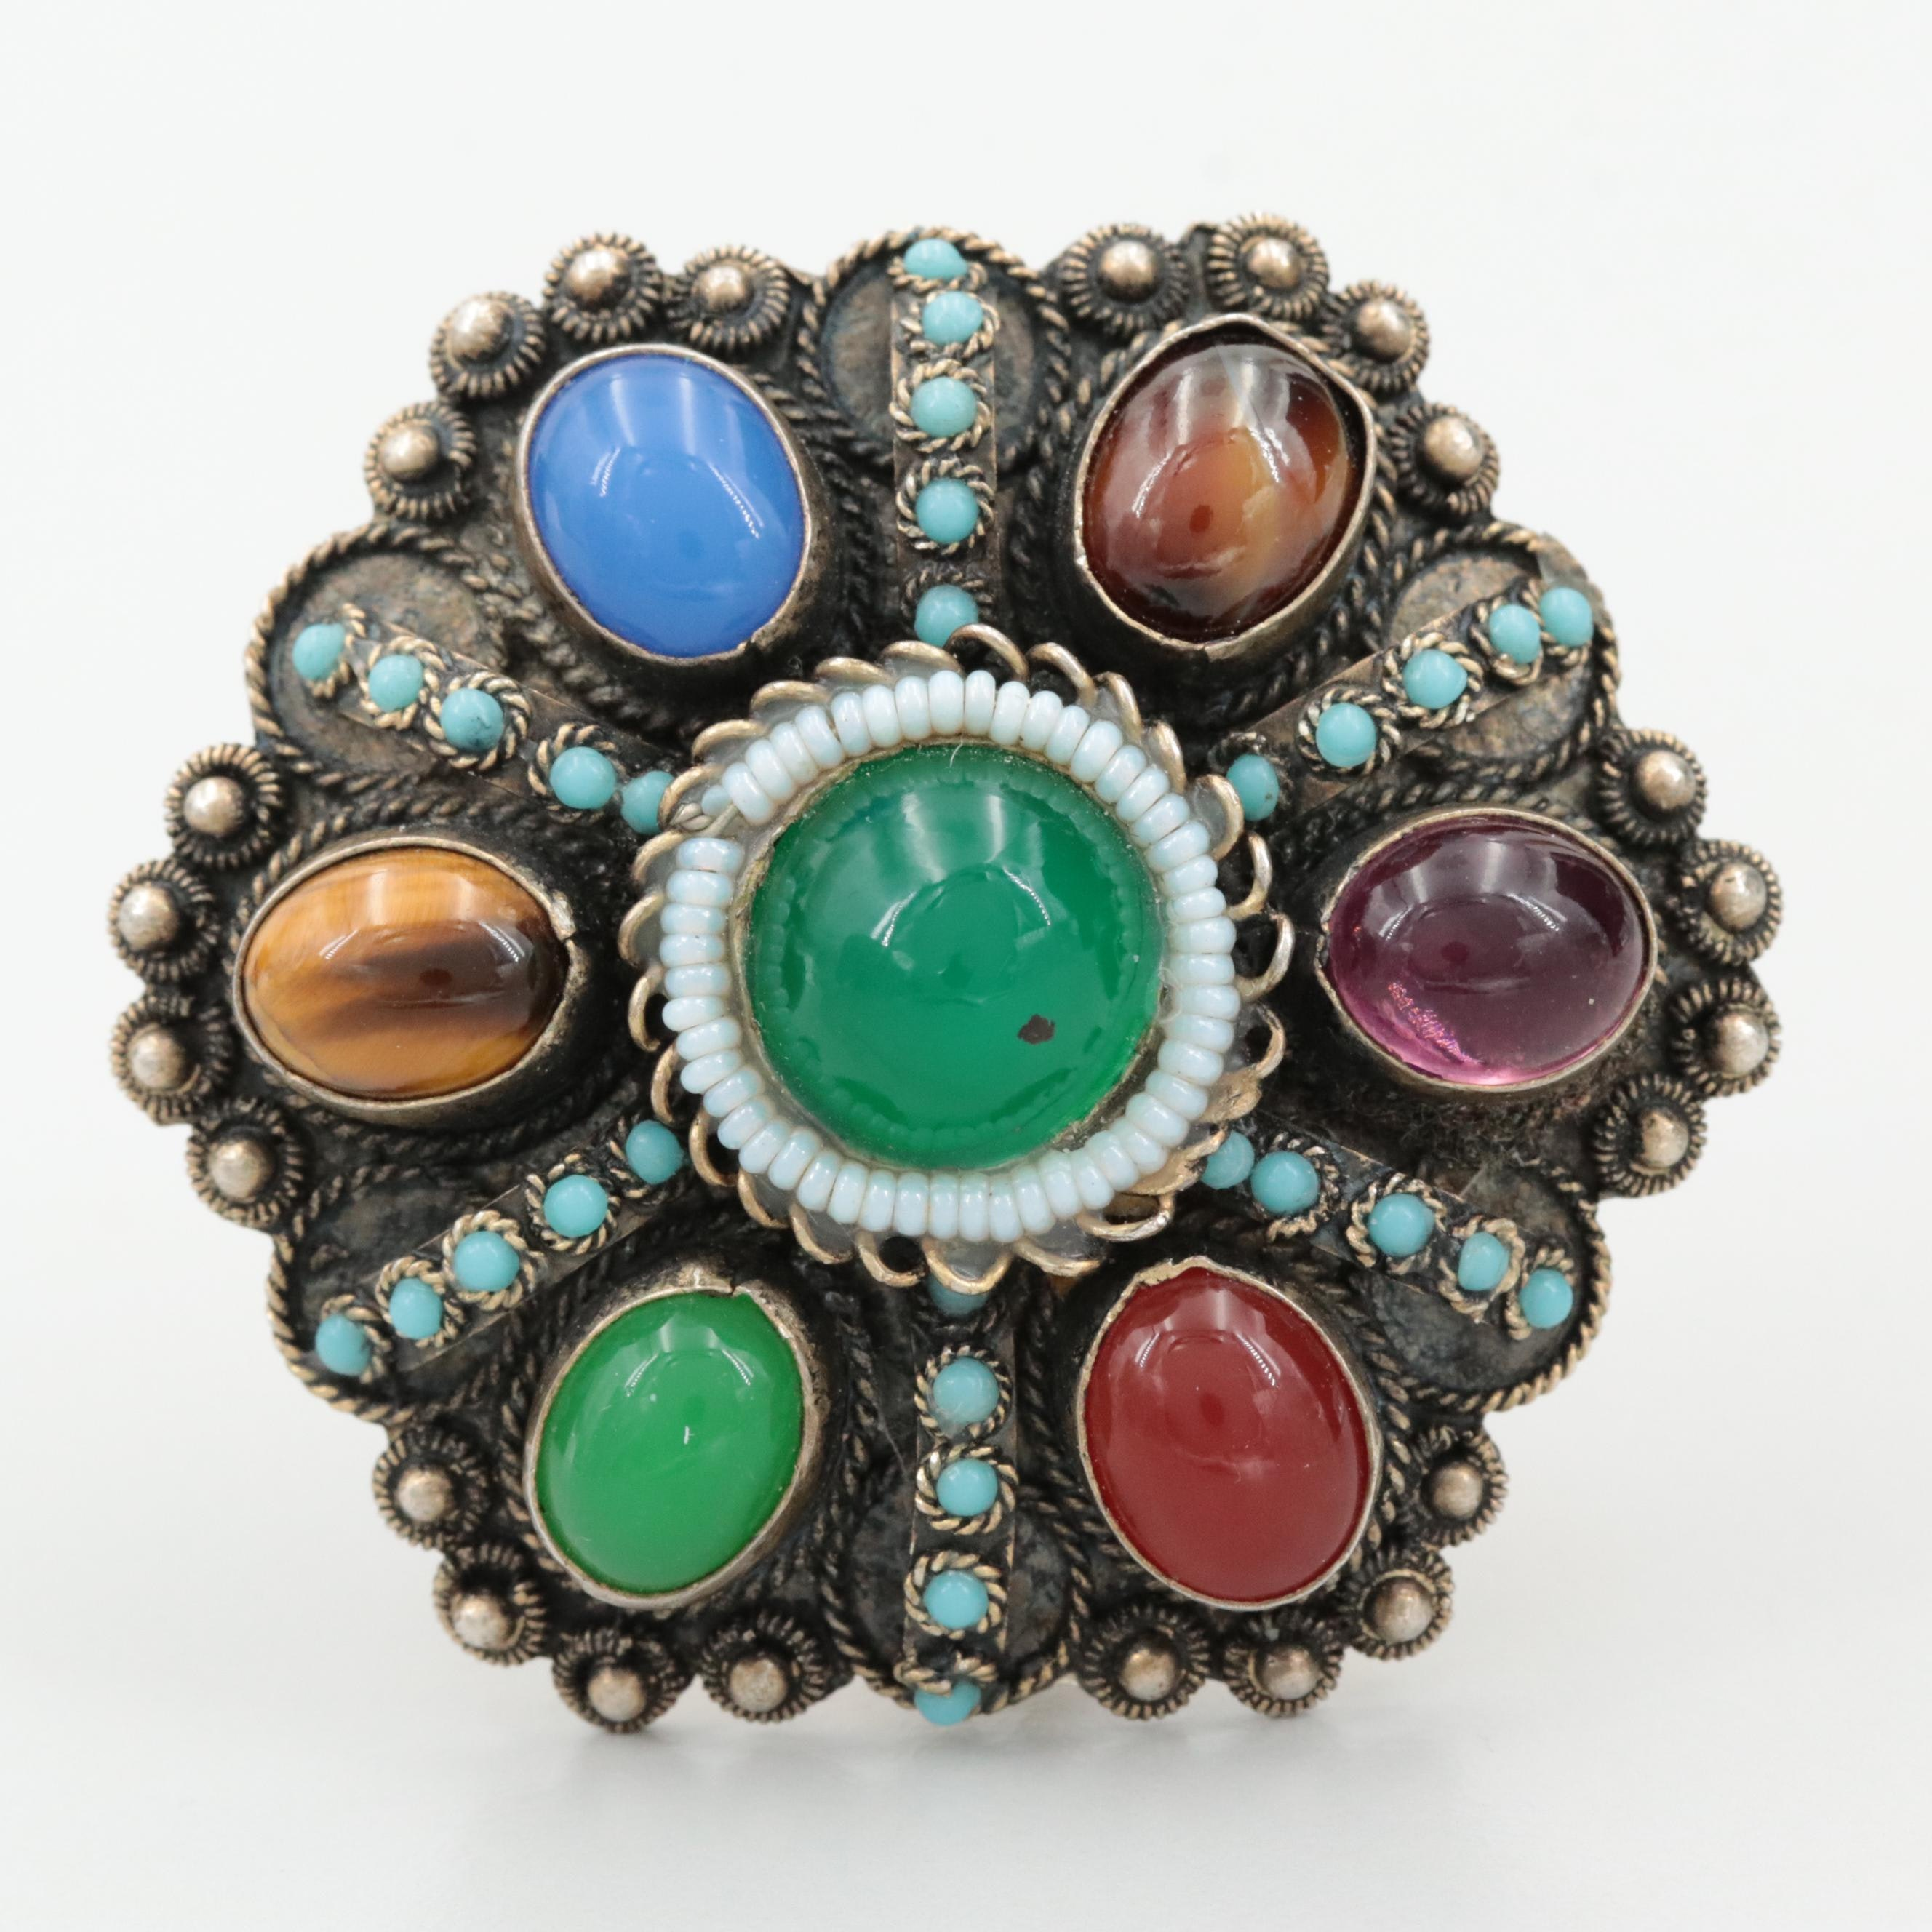 Israelic 935 Silver Tiger's Eye, Glass and Imitation Turquoise Converter Brooch